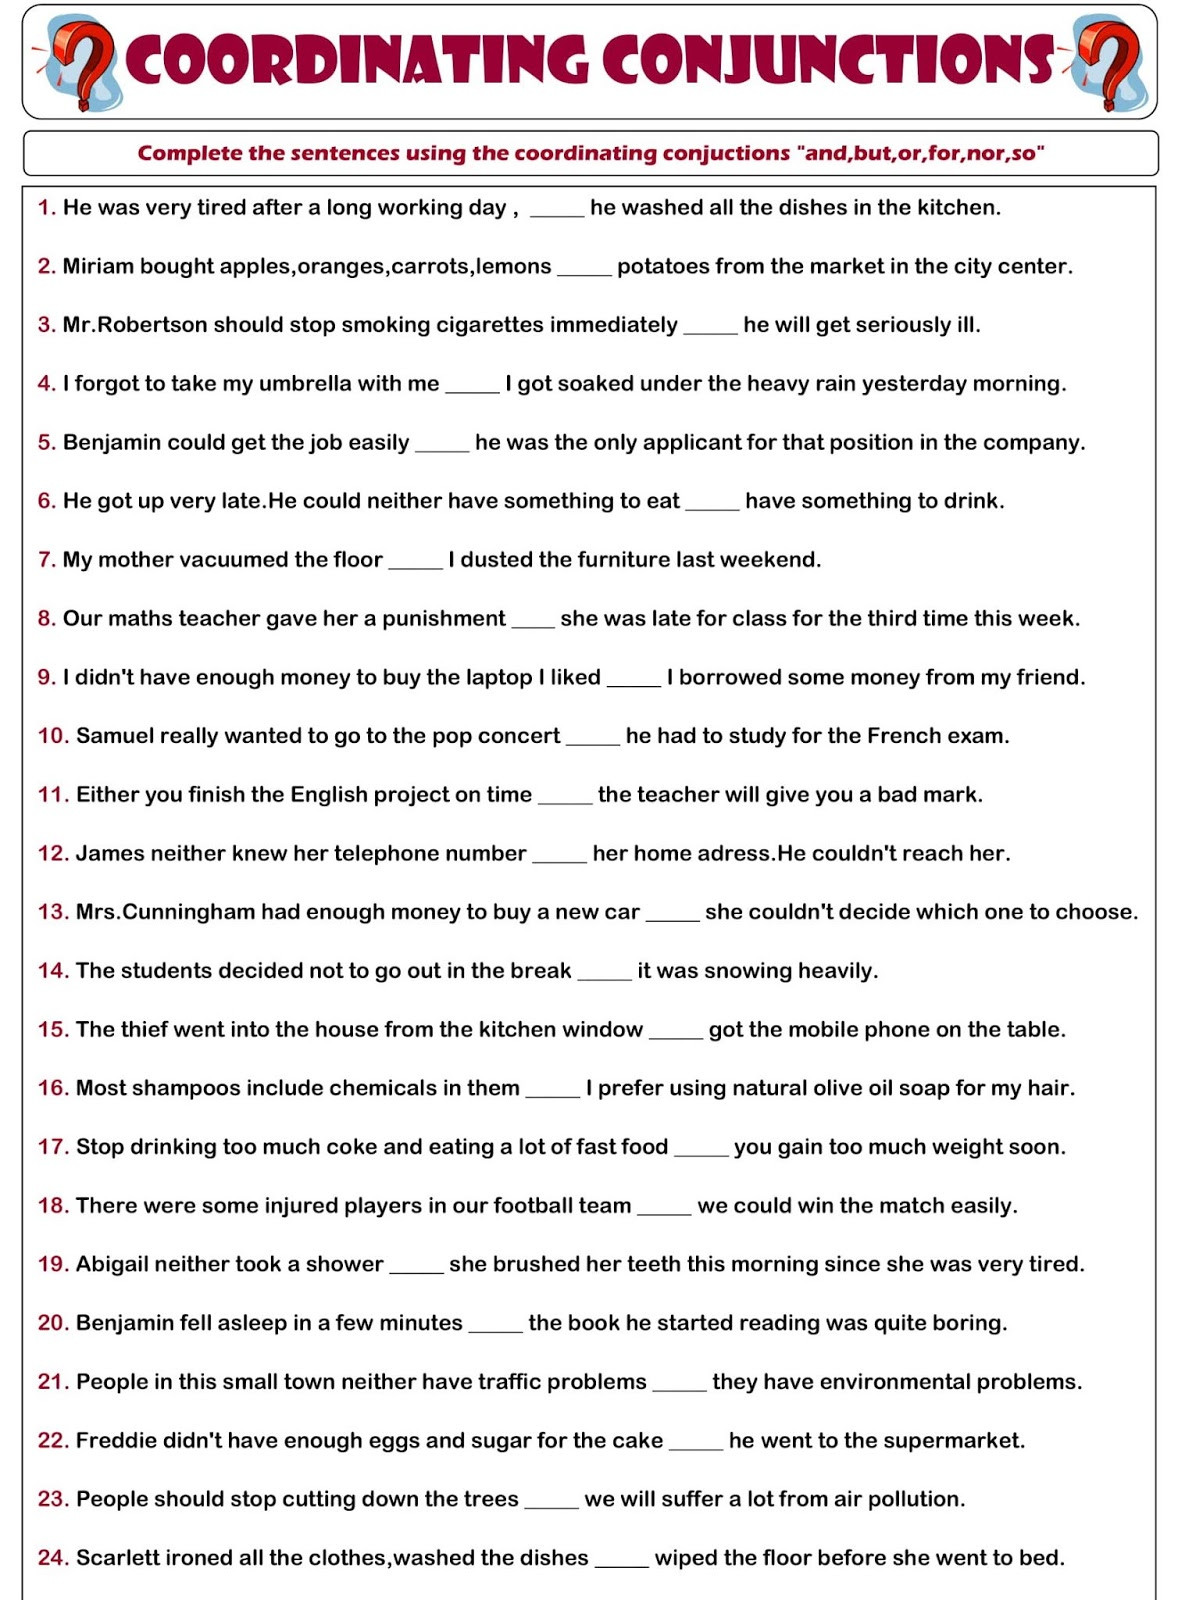 Correlative Conjunctions Worksheet 5th Grade English Grammar A to Z Conjunction Exercises